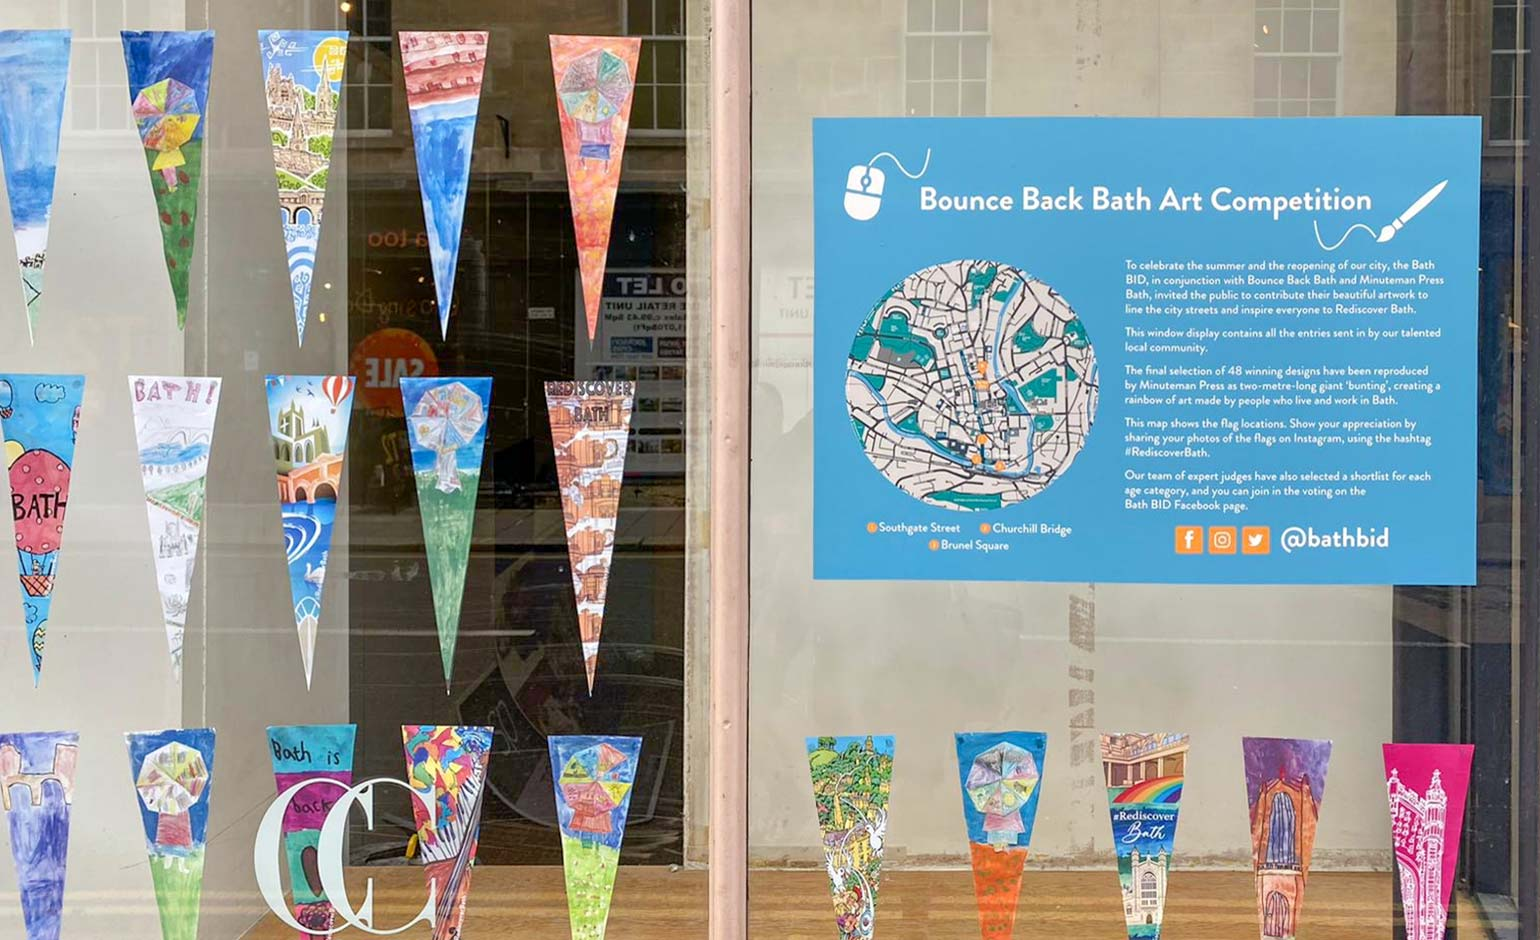 """Cheerful"" artwork fills the streets of Bath following citywide competition"